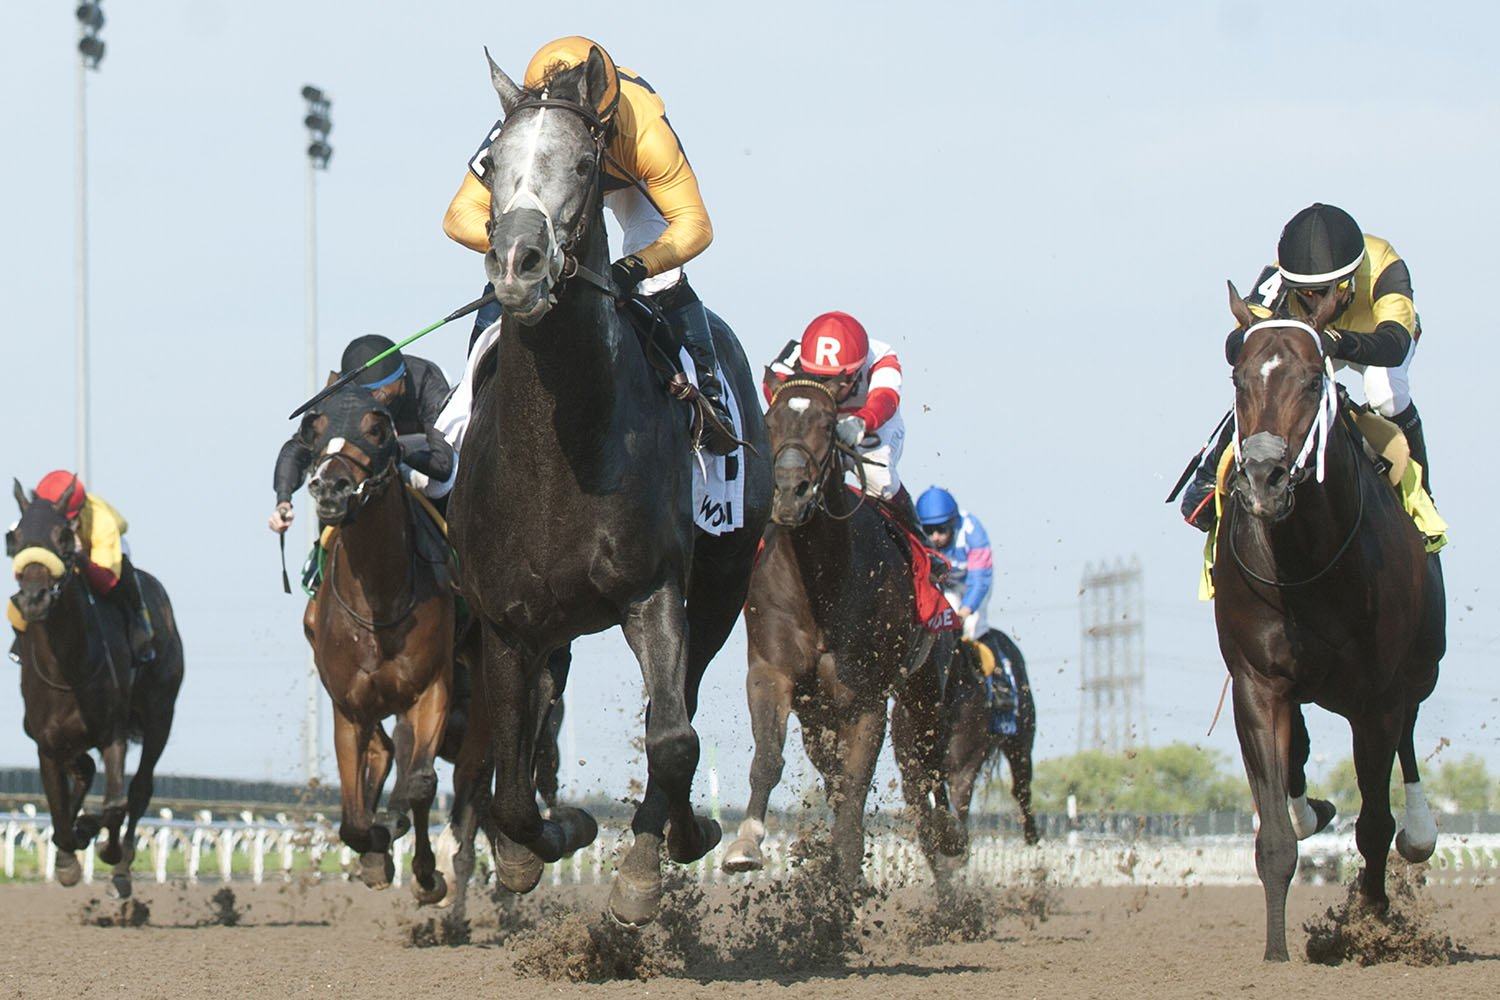 Outadore and jockey Justin Stein winning the $125,000 Woodstock Stakes on Sunday, June 20 at Woodbine Racetrack. (Michael Burns Photo)